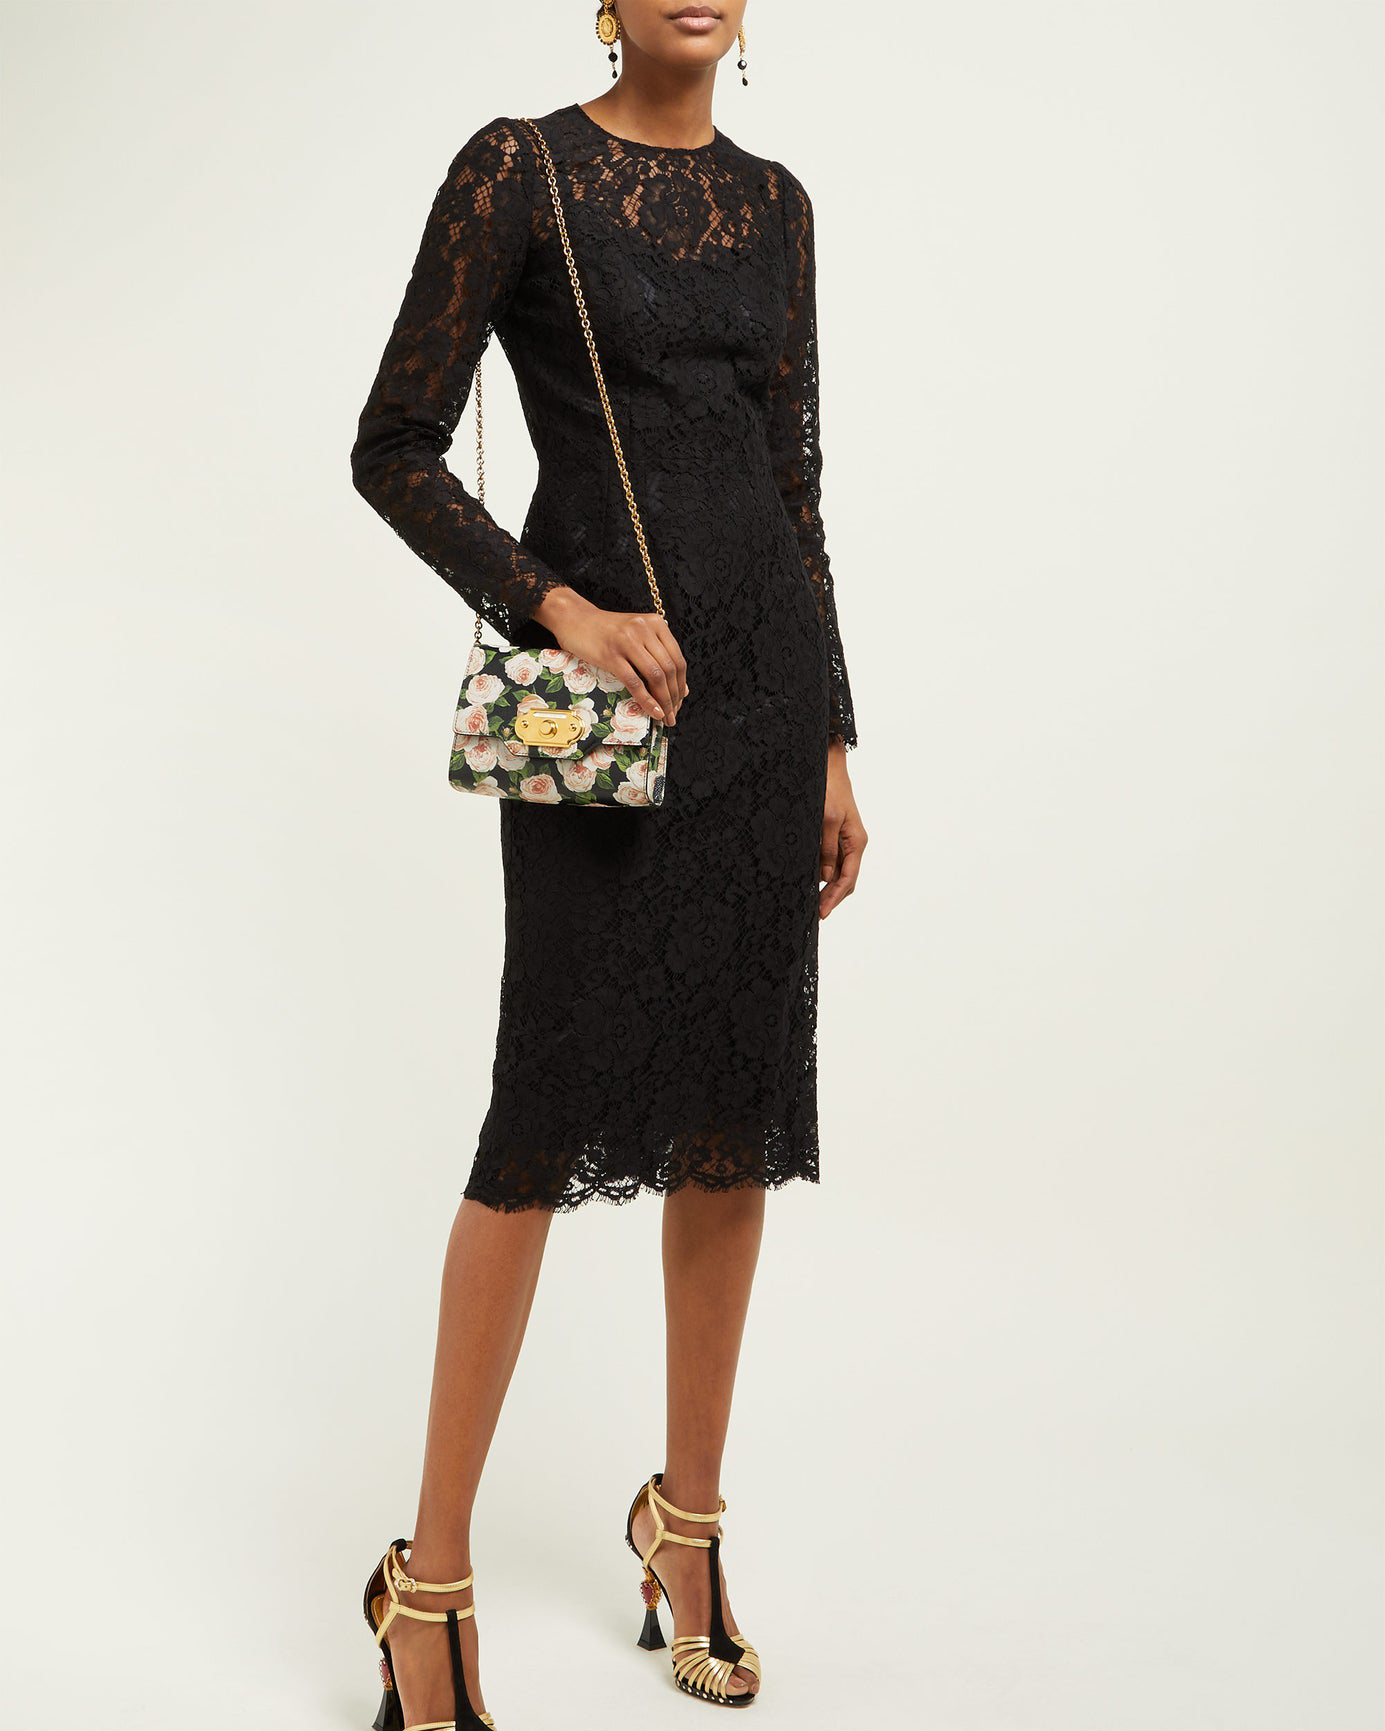 Dolce & Gabbana Floral and Eyelash Lace Midi Dress